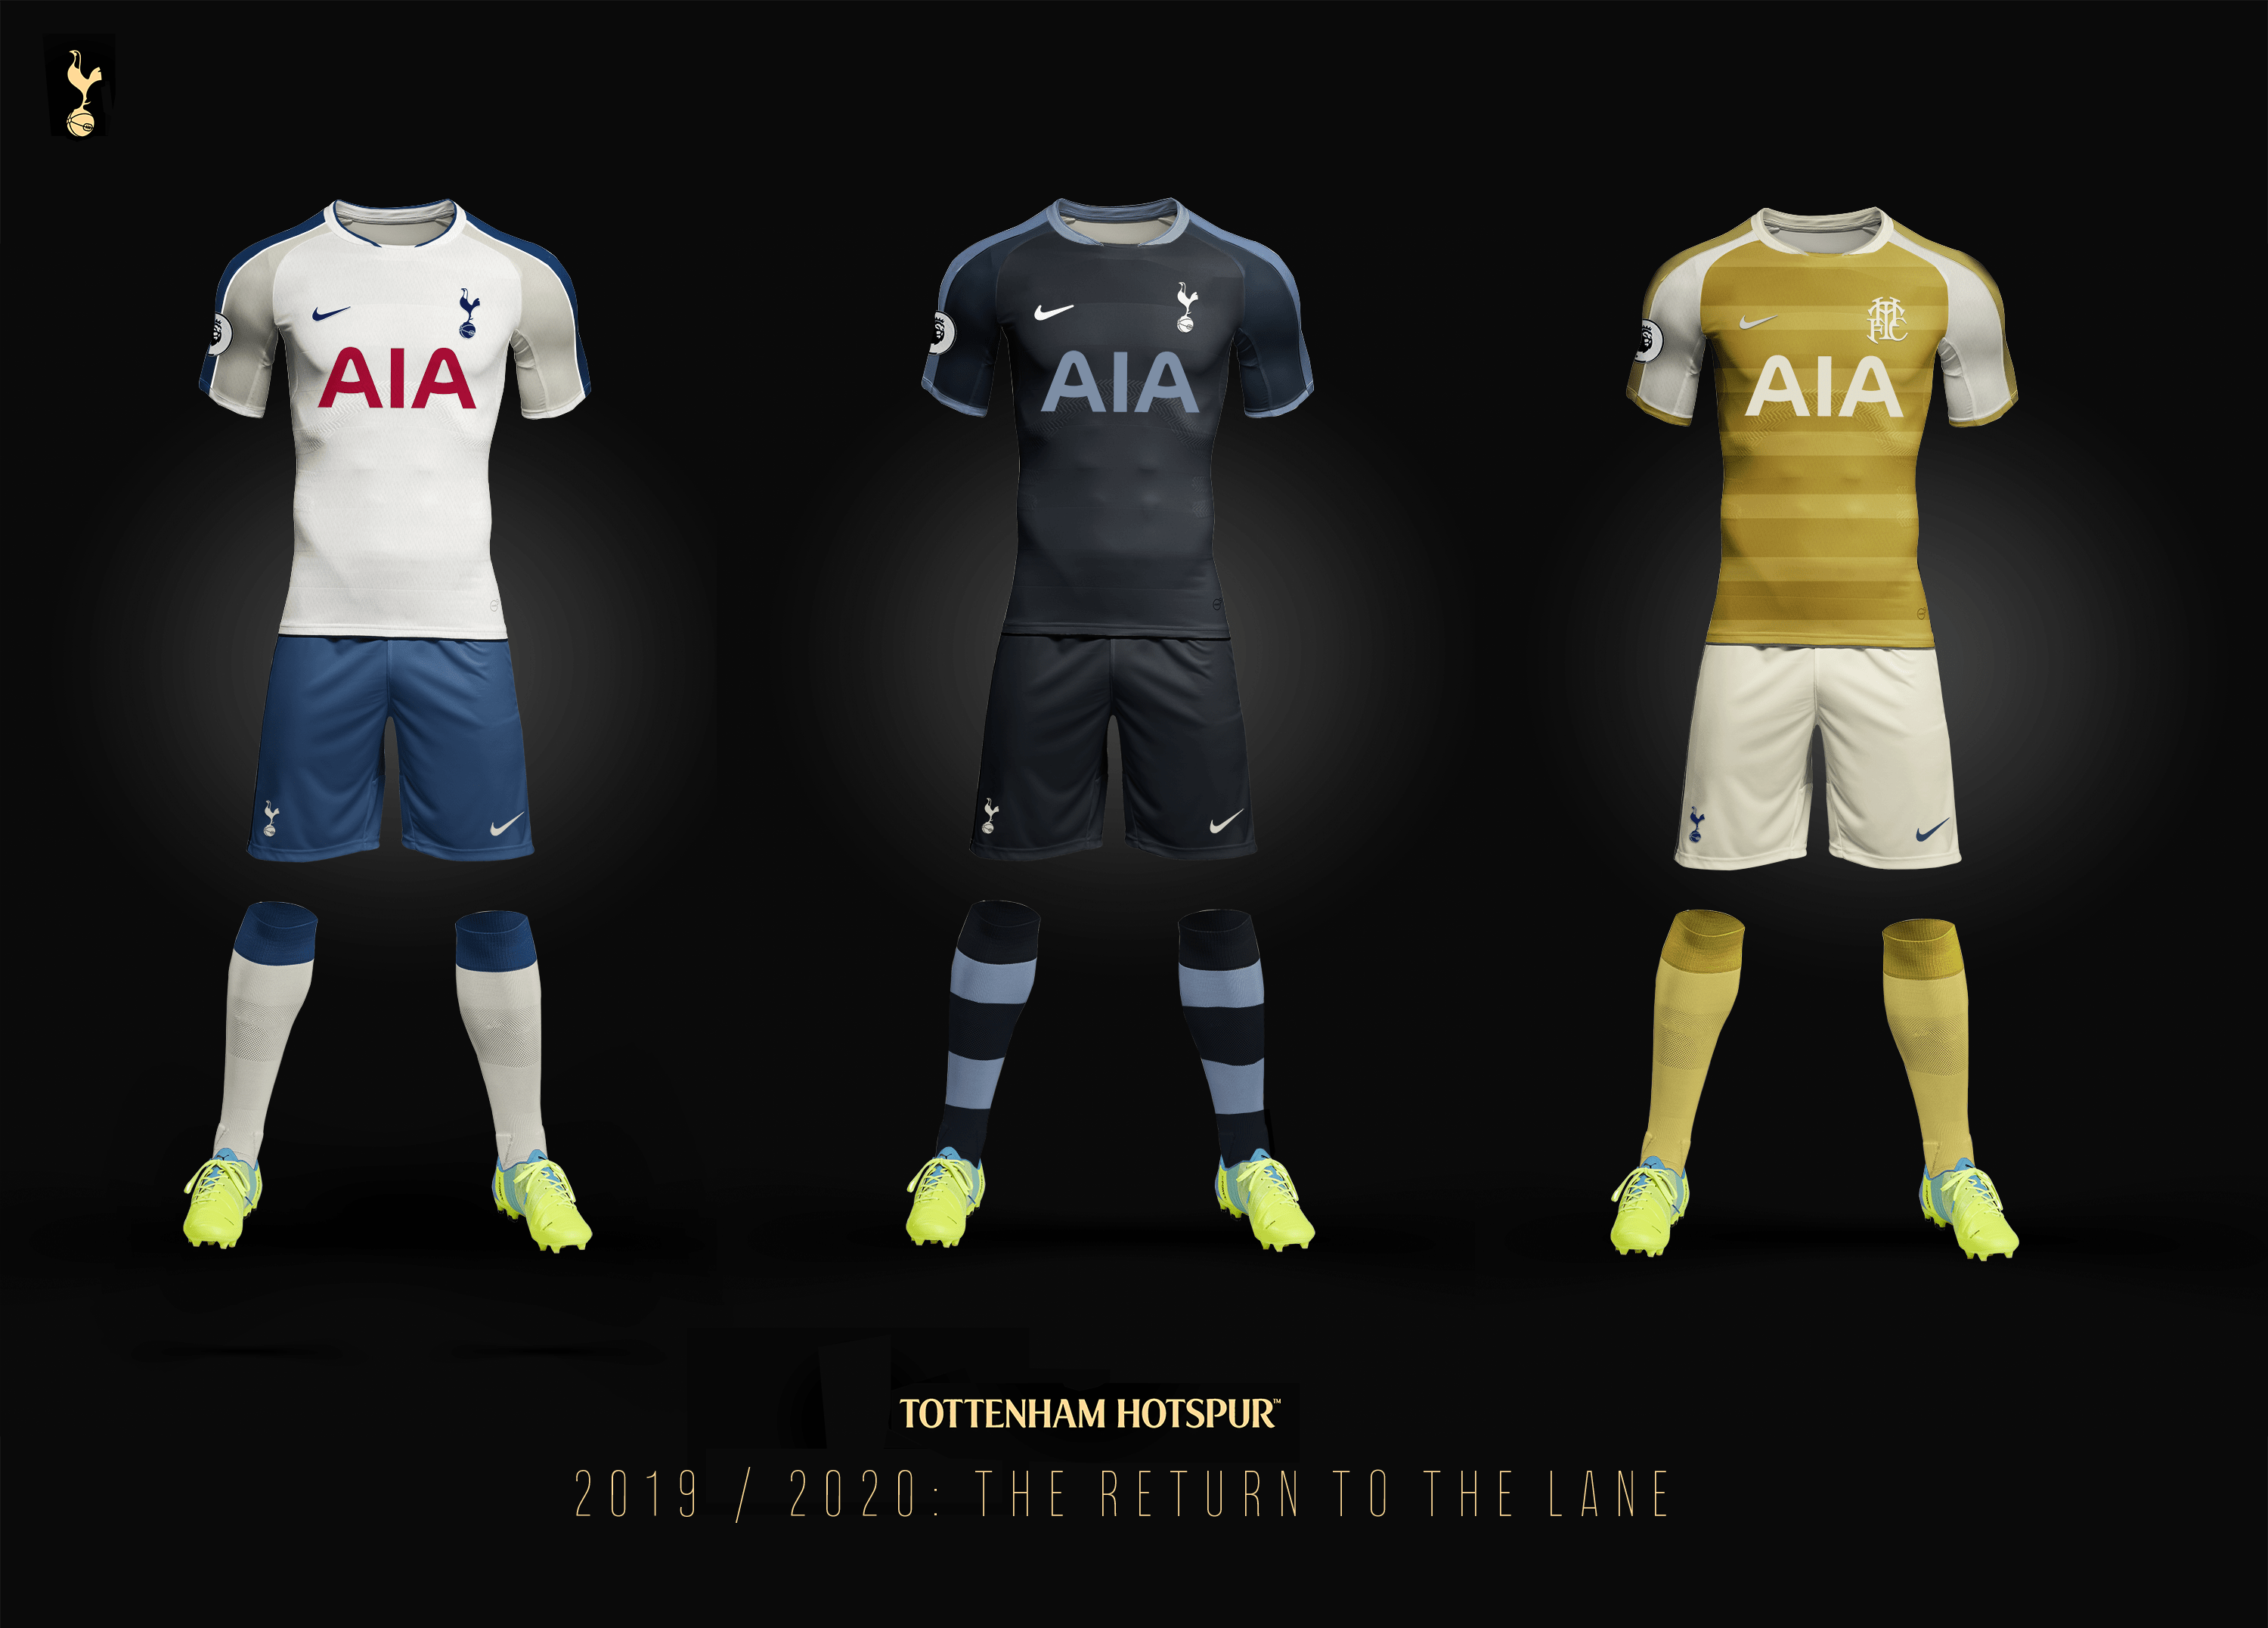 Shop here for your 20/21 spurs home kit, jerseys, shorts and socks with fast shipping! Tottenham Hotspur 2019 2020 Kit Concepts